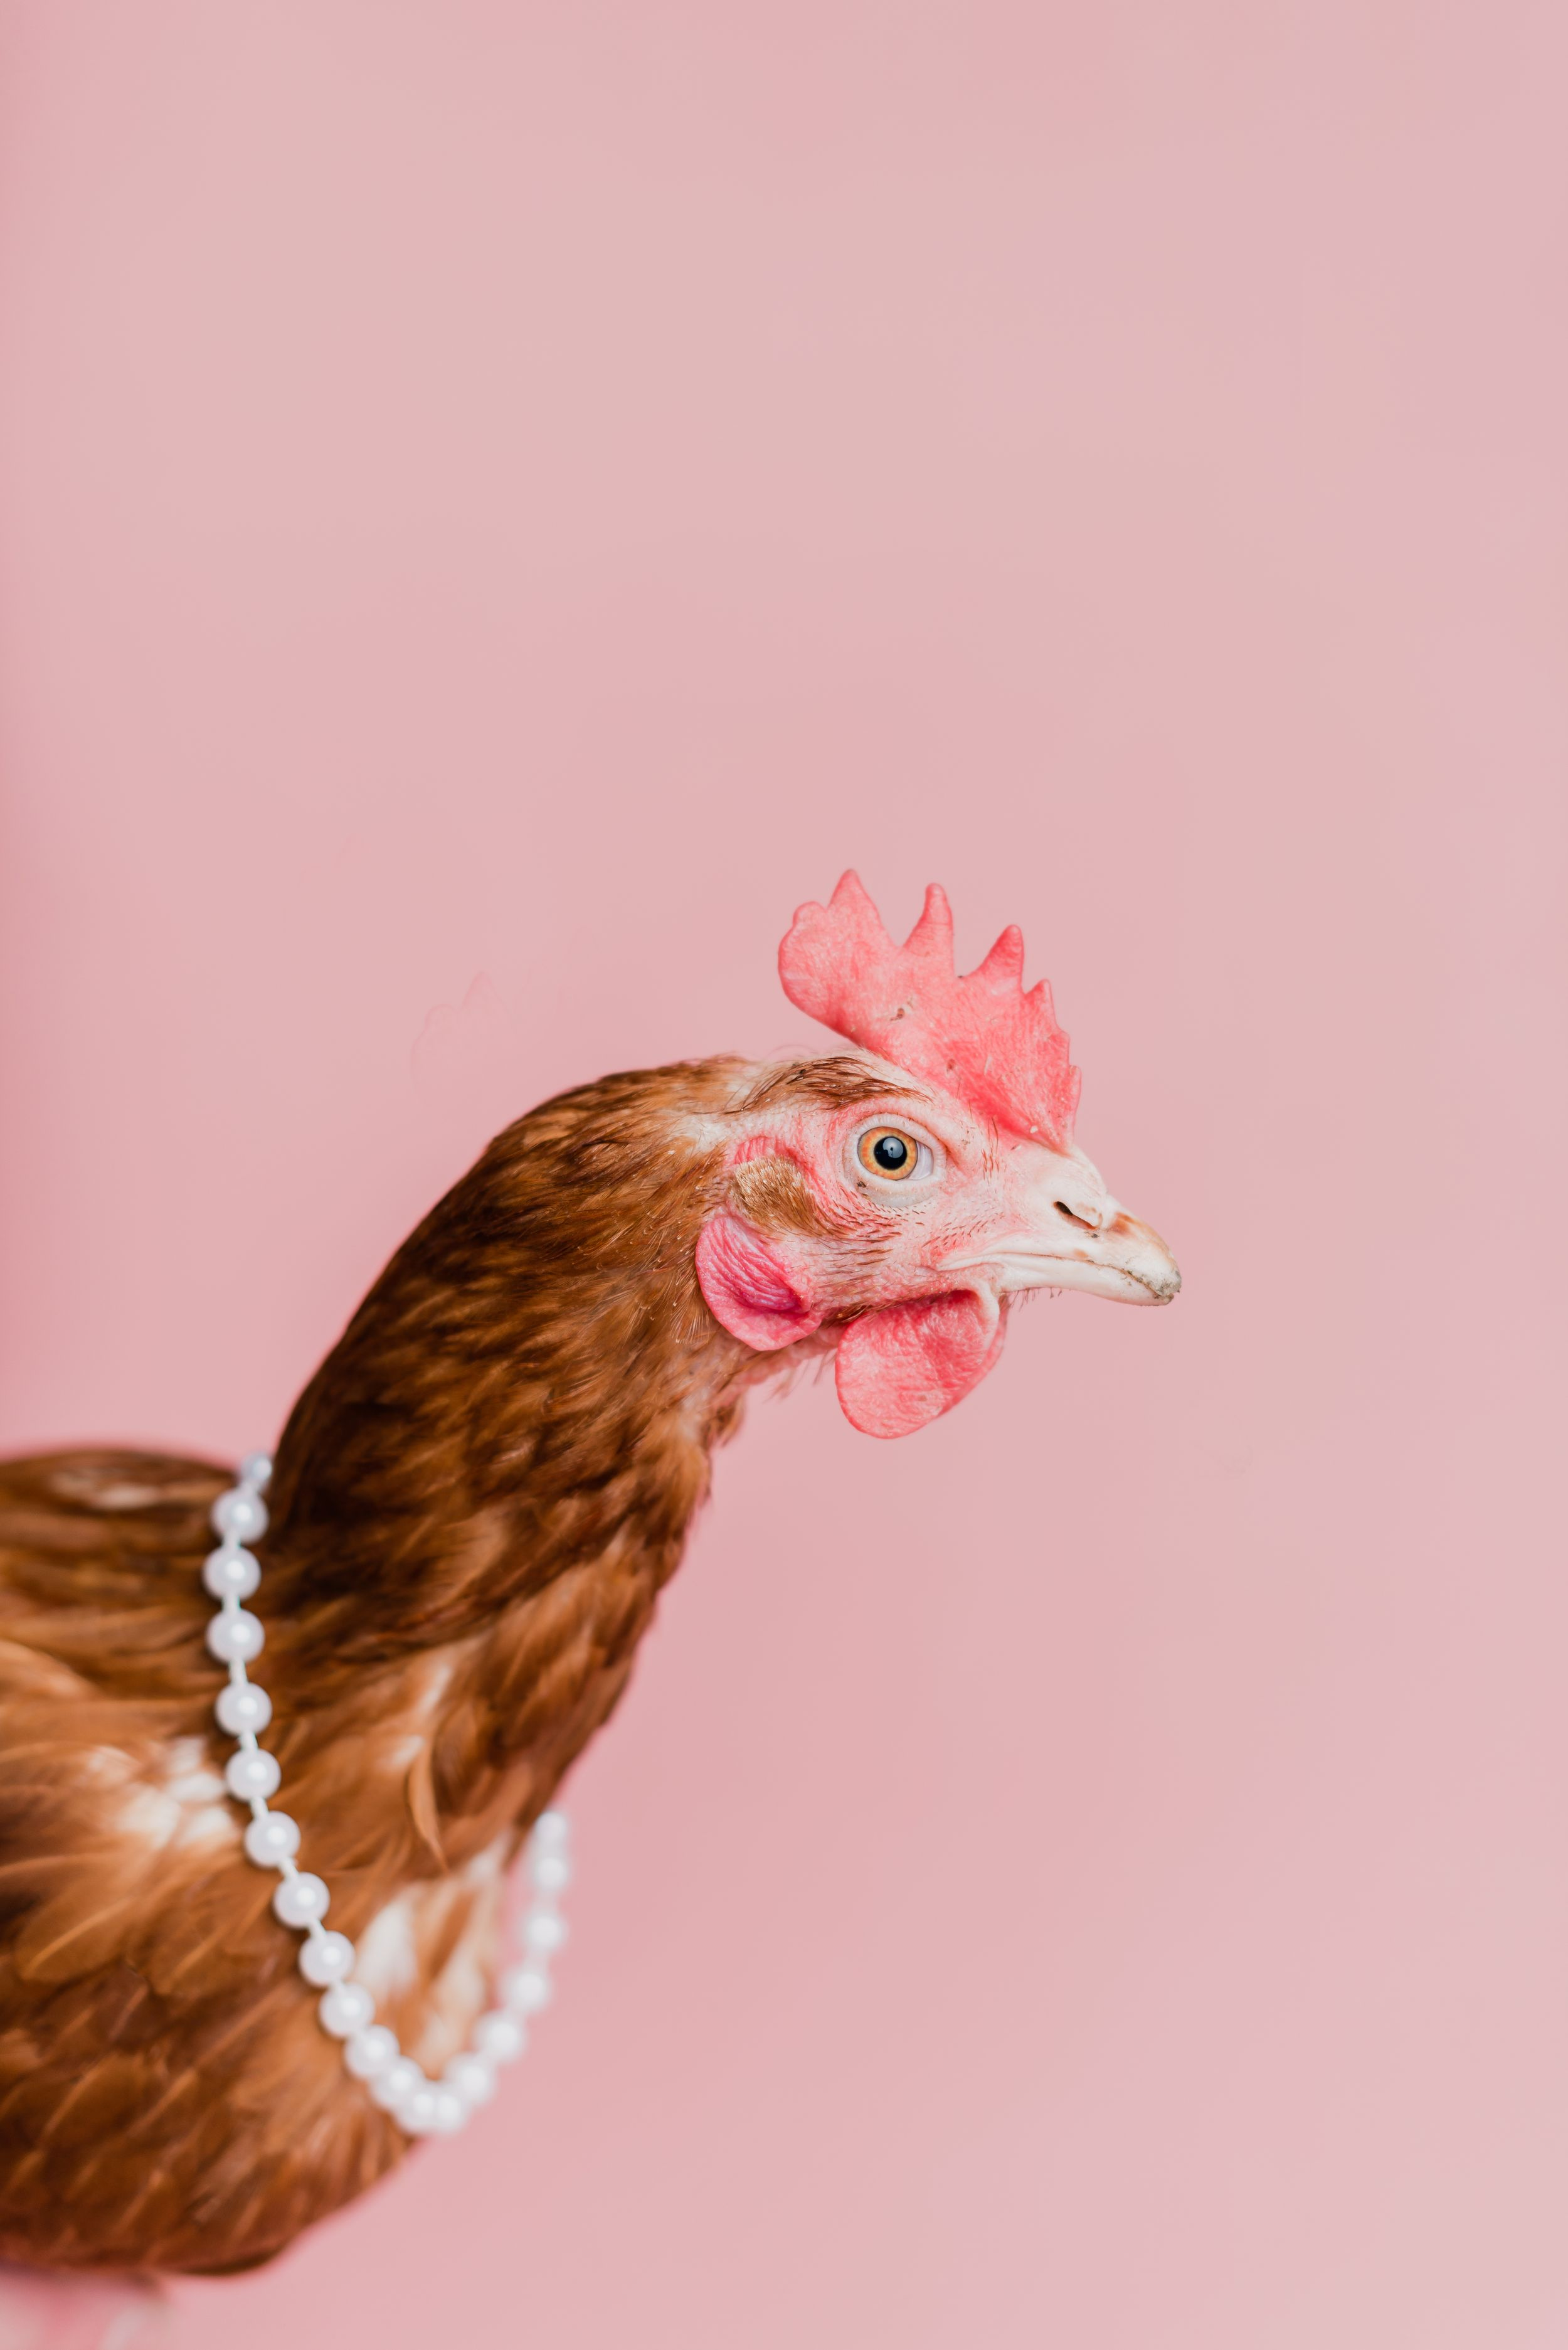 Chicken wearing a necklace